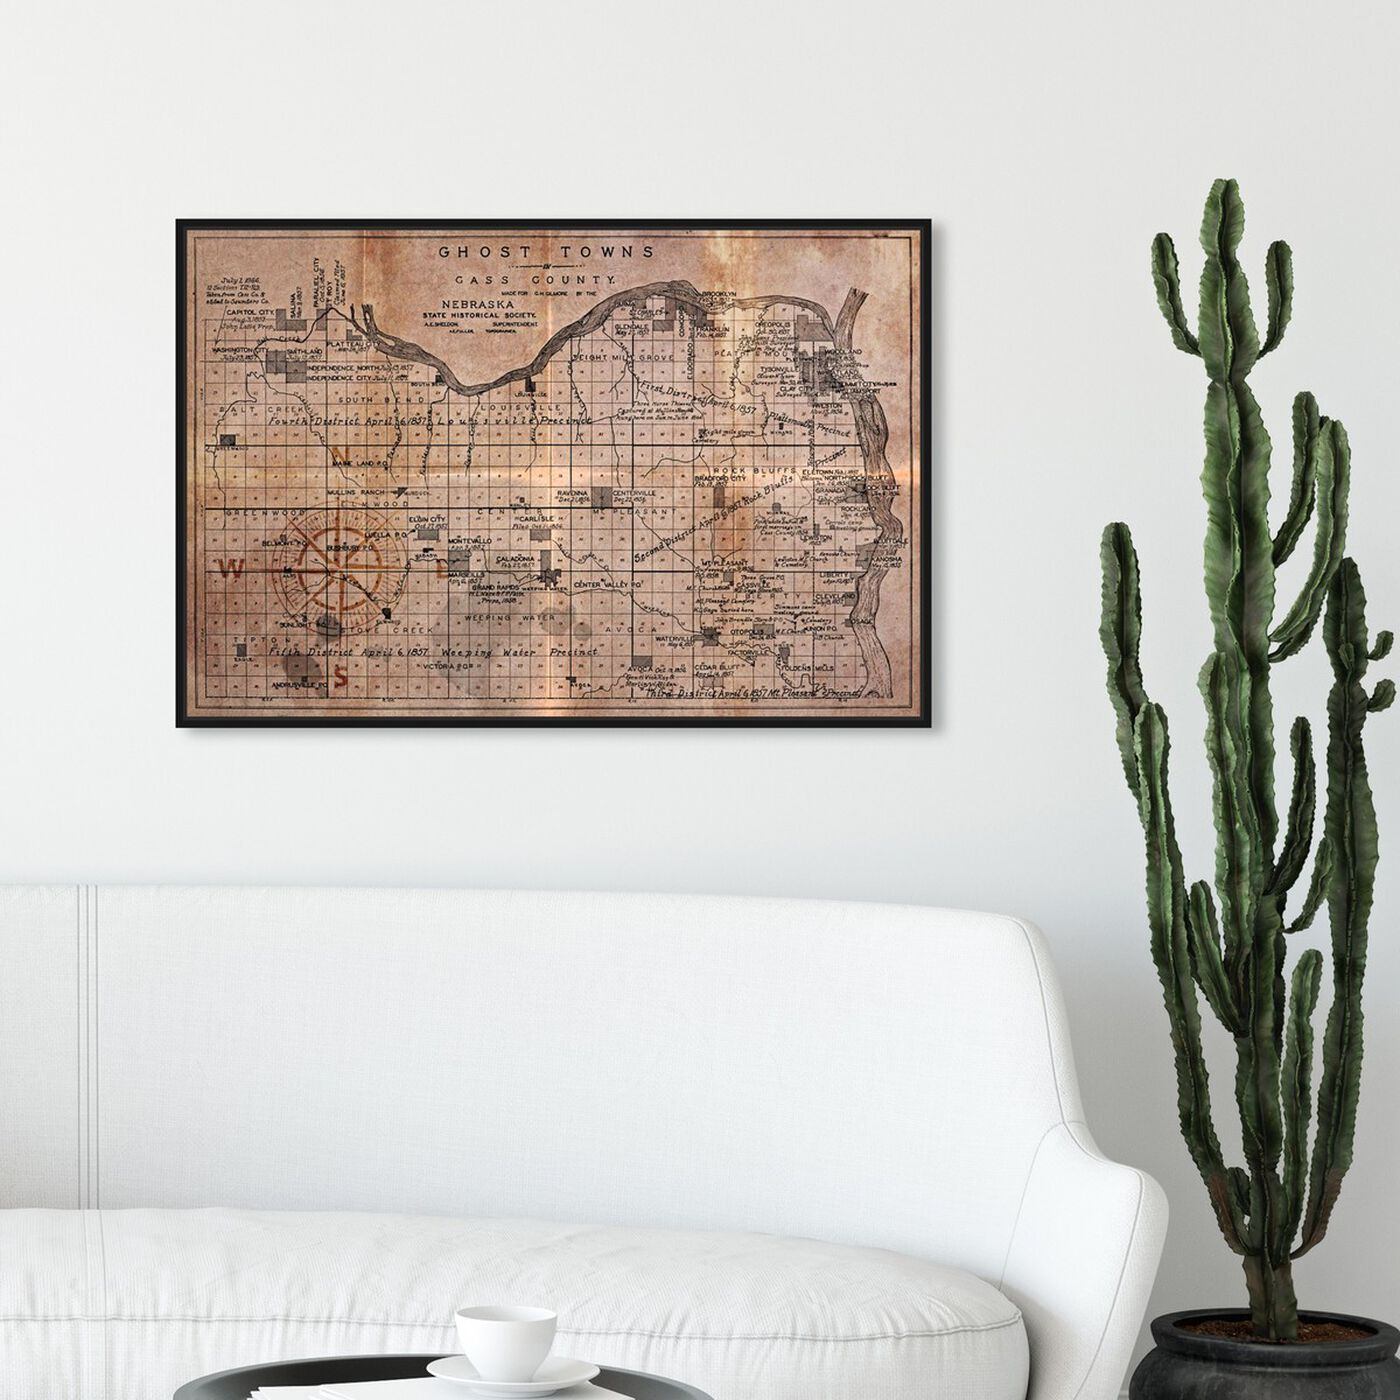 Hanging view of Ghost Towns Map 1866 featuring maps and flags and urban maps art.